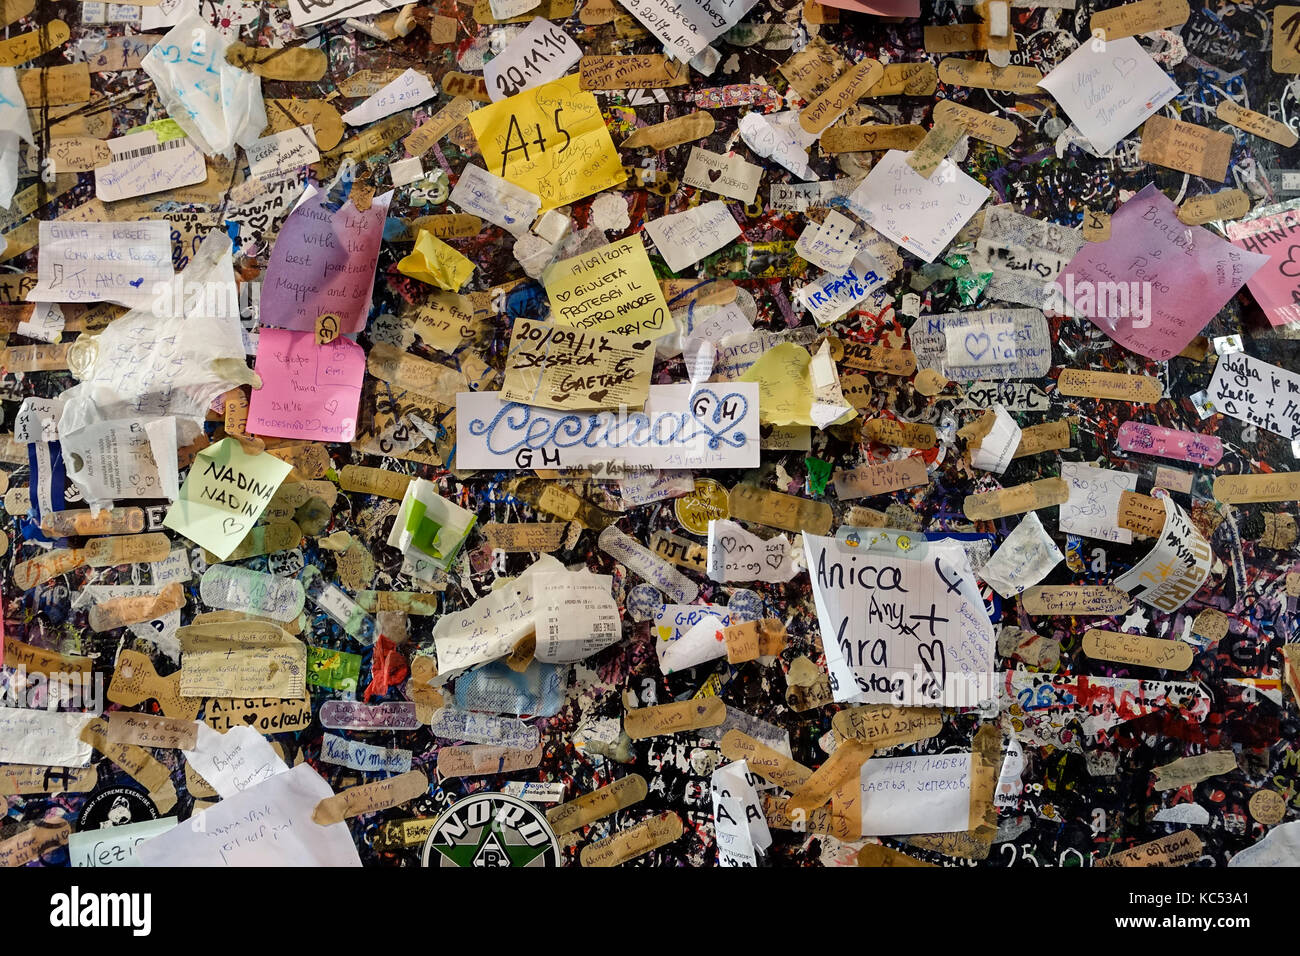 Graffiti and Notes with good wishes at the Casa di Giulietta, Juliet's House, Verona, Venice, Italy, Europe - Stock Image